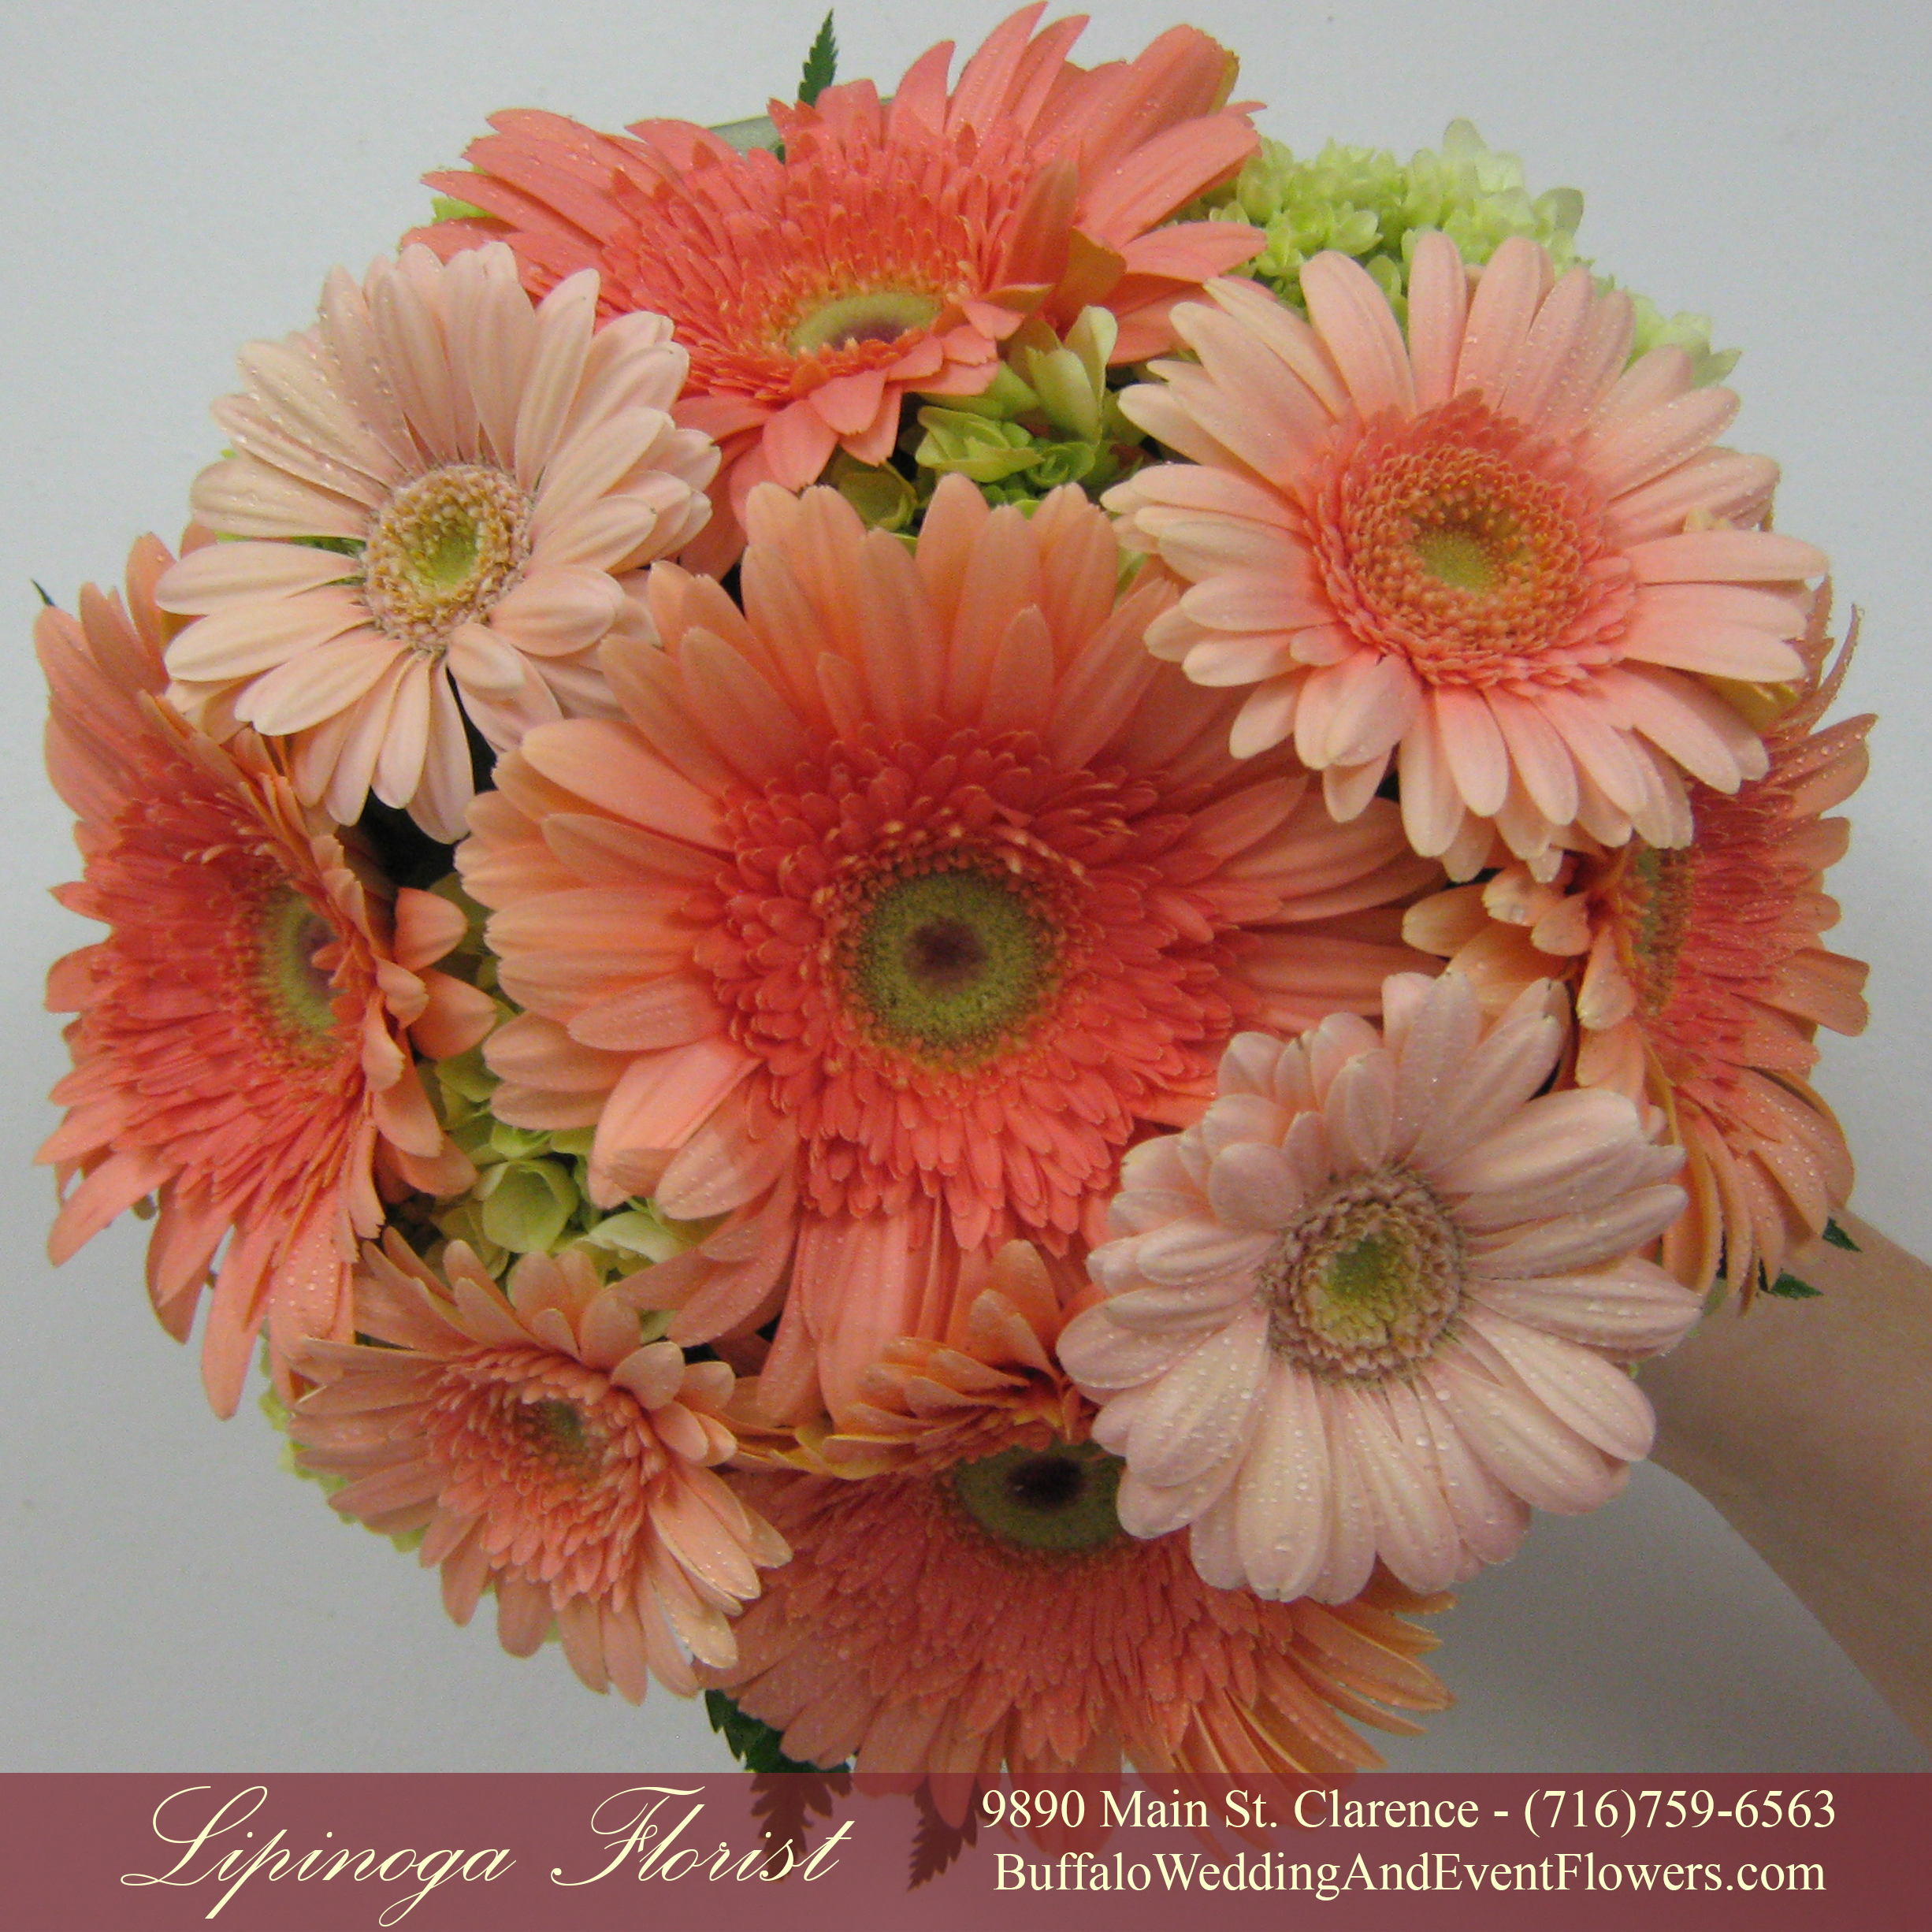 Peach Wedding Flowers Buffalo Wedding Event Flowers By Lipinoga